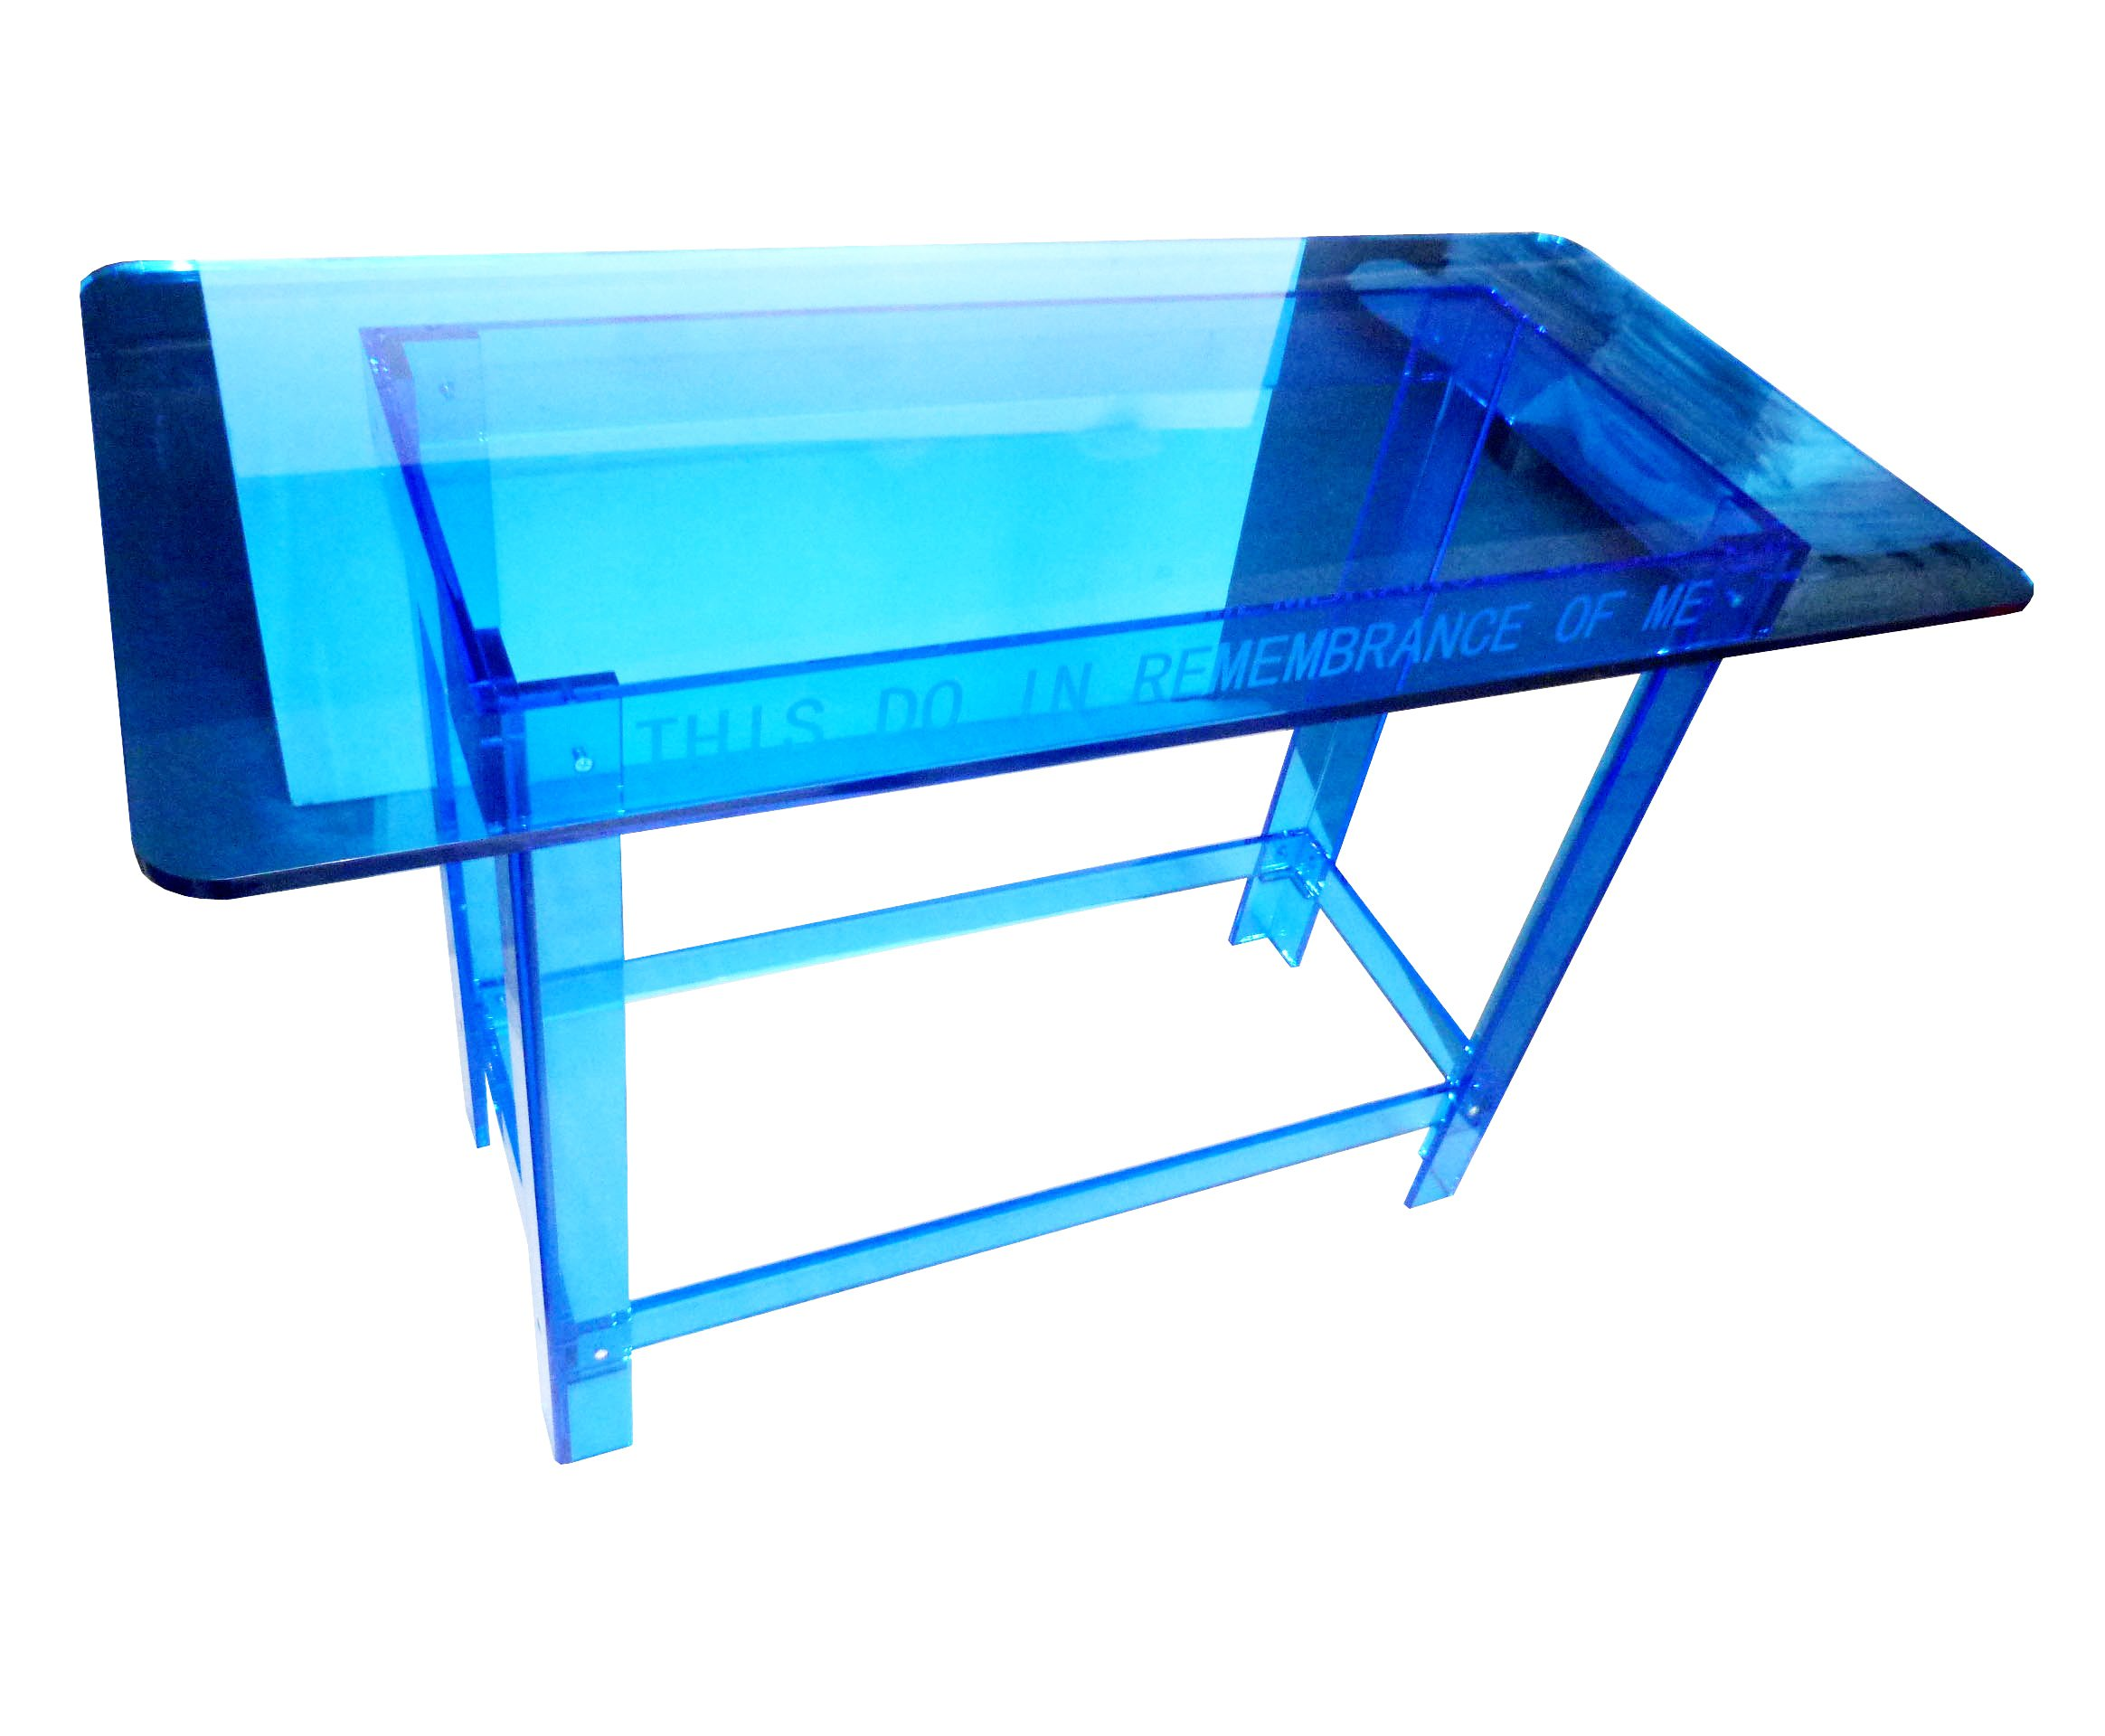 Fixture Displays Blue Tinted Plexiglass Acrylic Church Communion Christian Table Desk 14309 14309! by FixtureDisplays